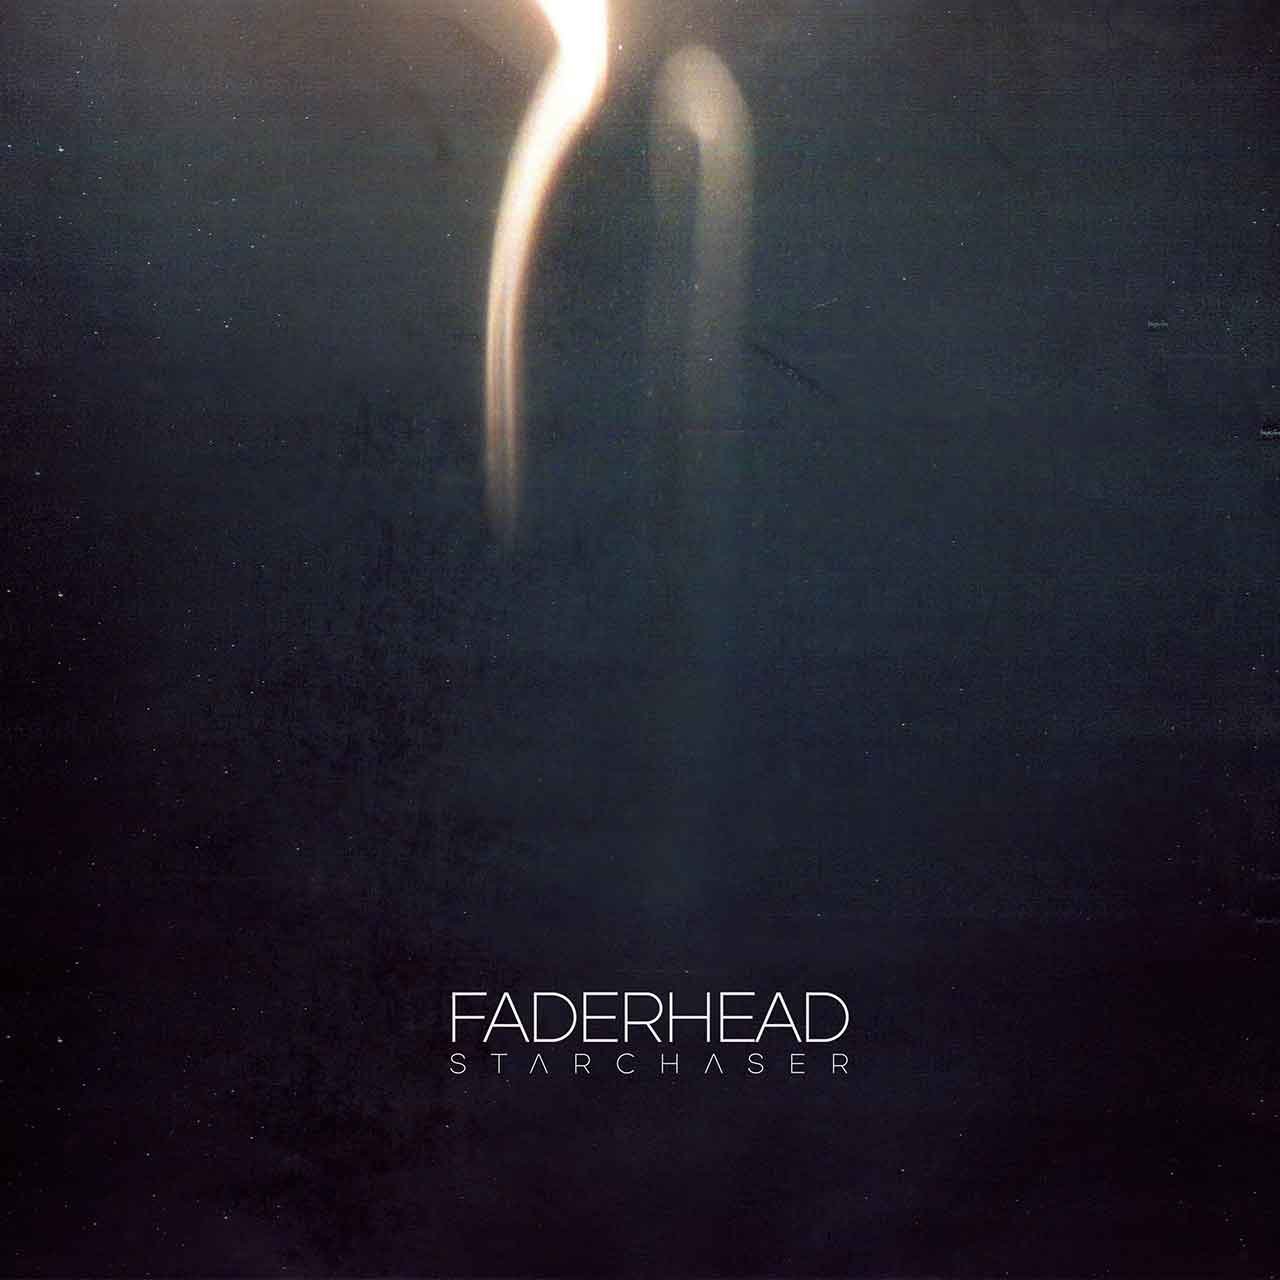 Faderhead - Starchaser EP